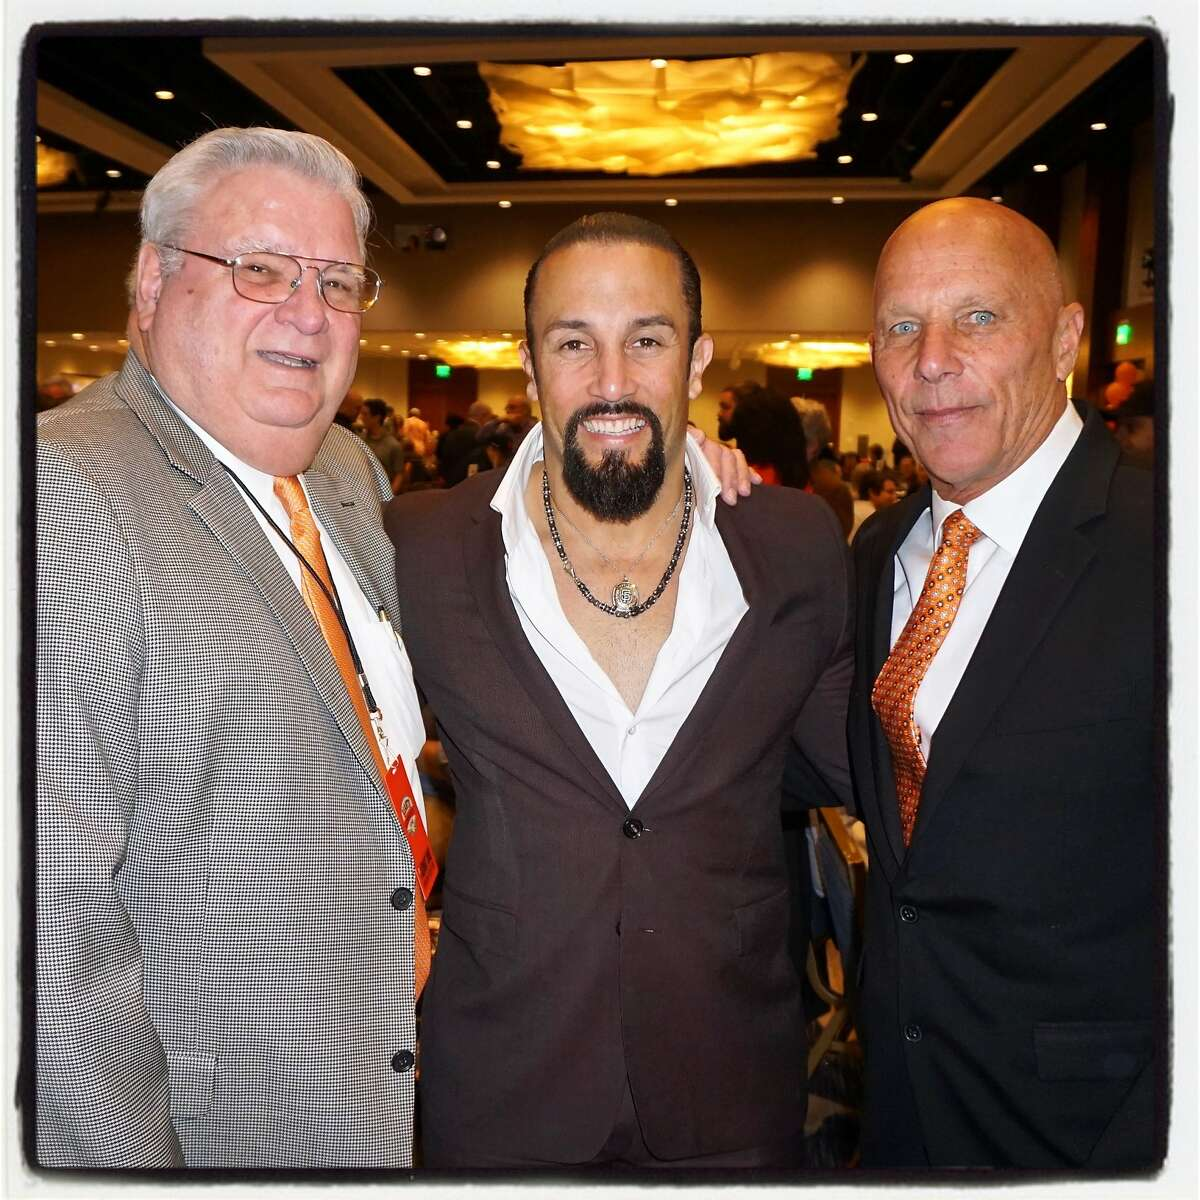 SF Giants owner Larry Nibbi (left) with former Giant Andres Torres and MLB announcer Tim Flannery at the Play Ball Lunch. March 31, 2017.